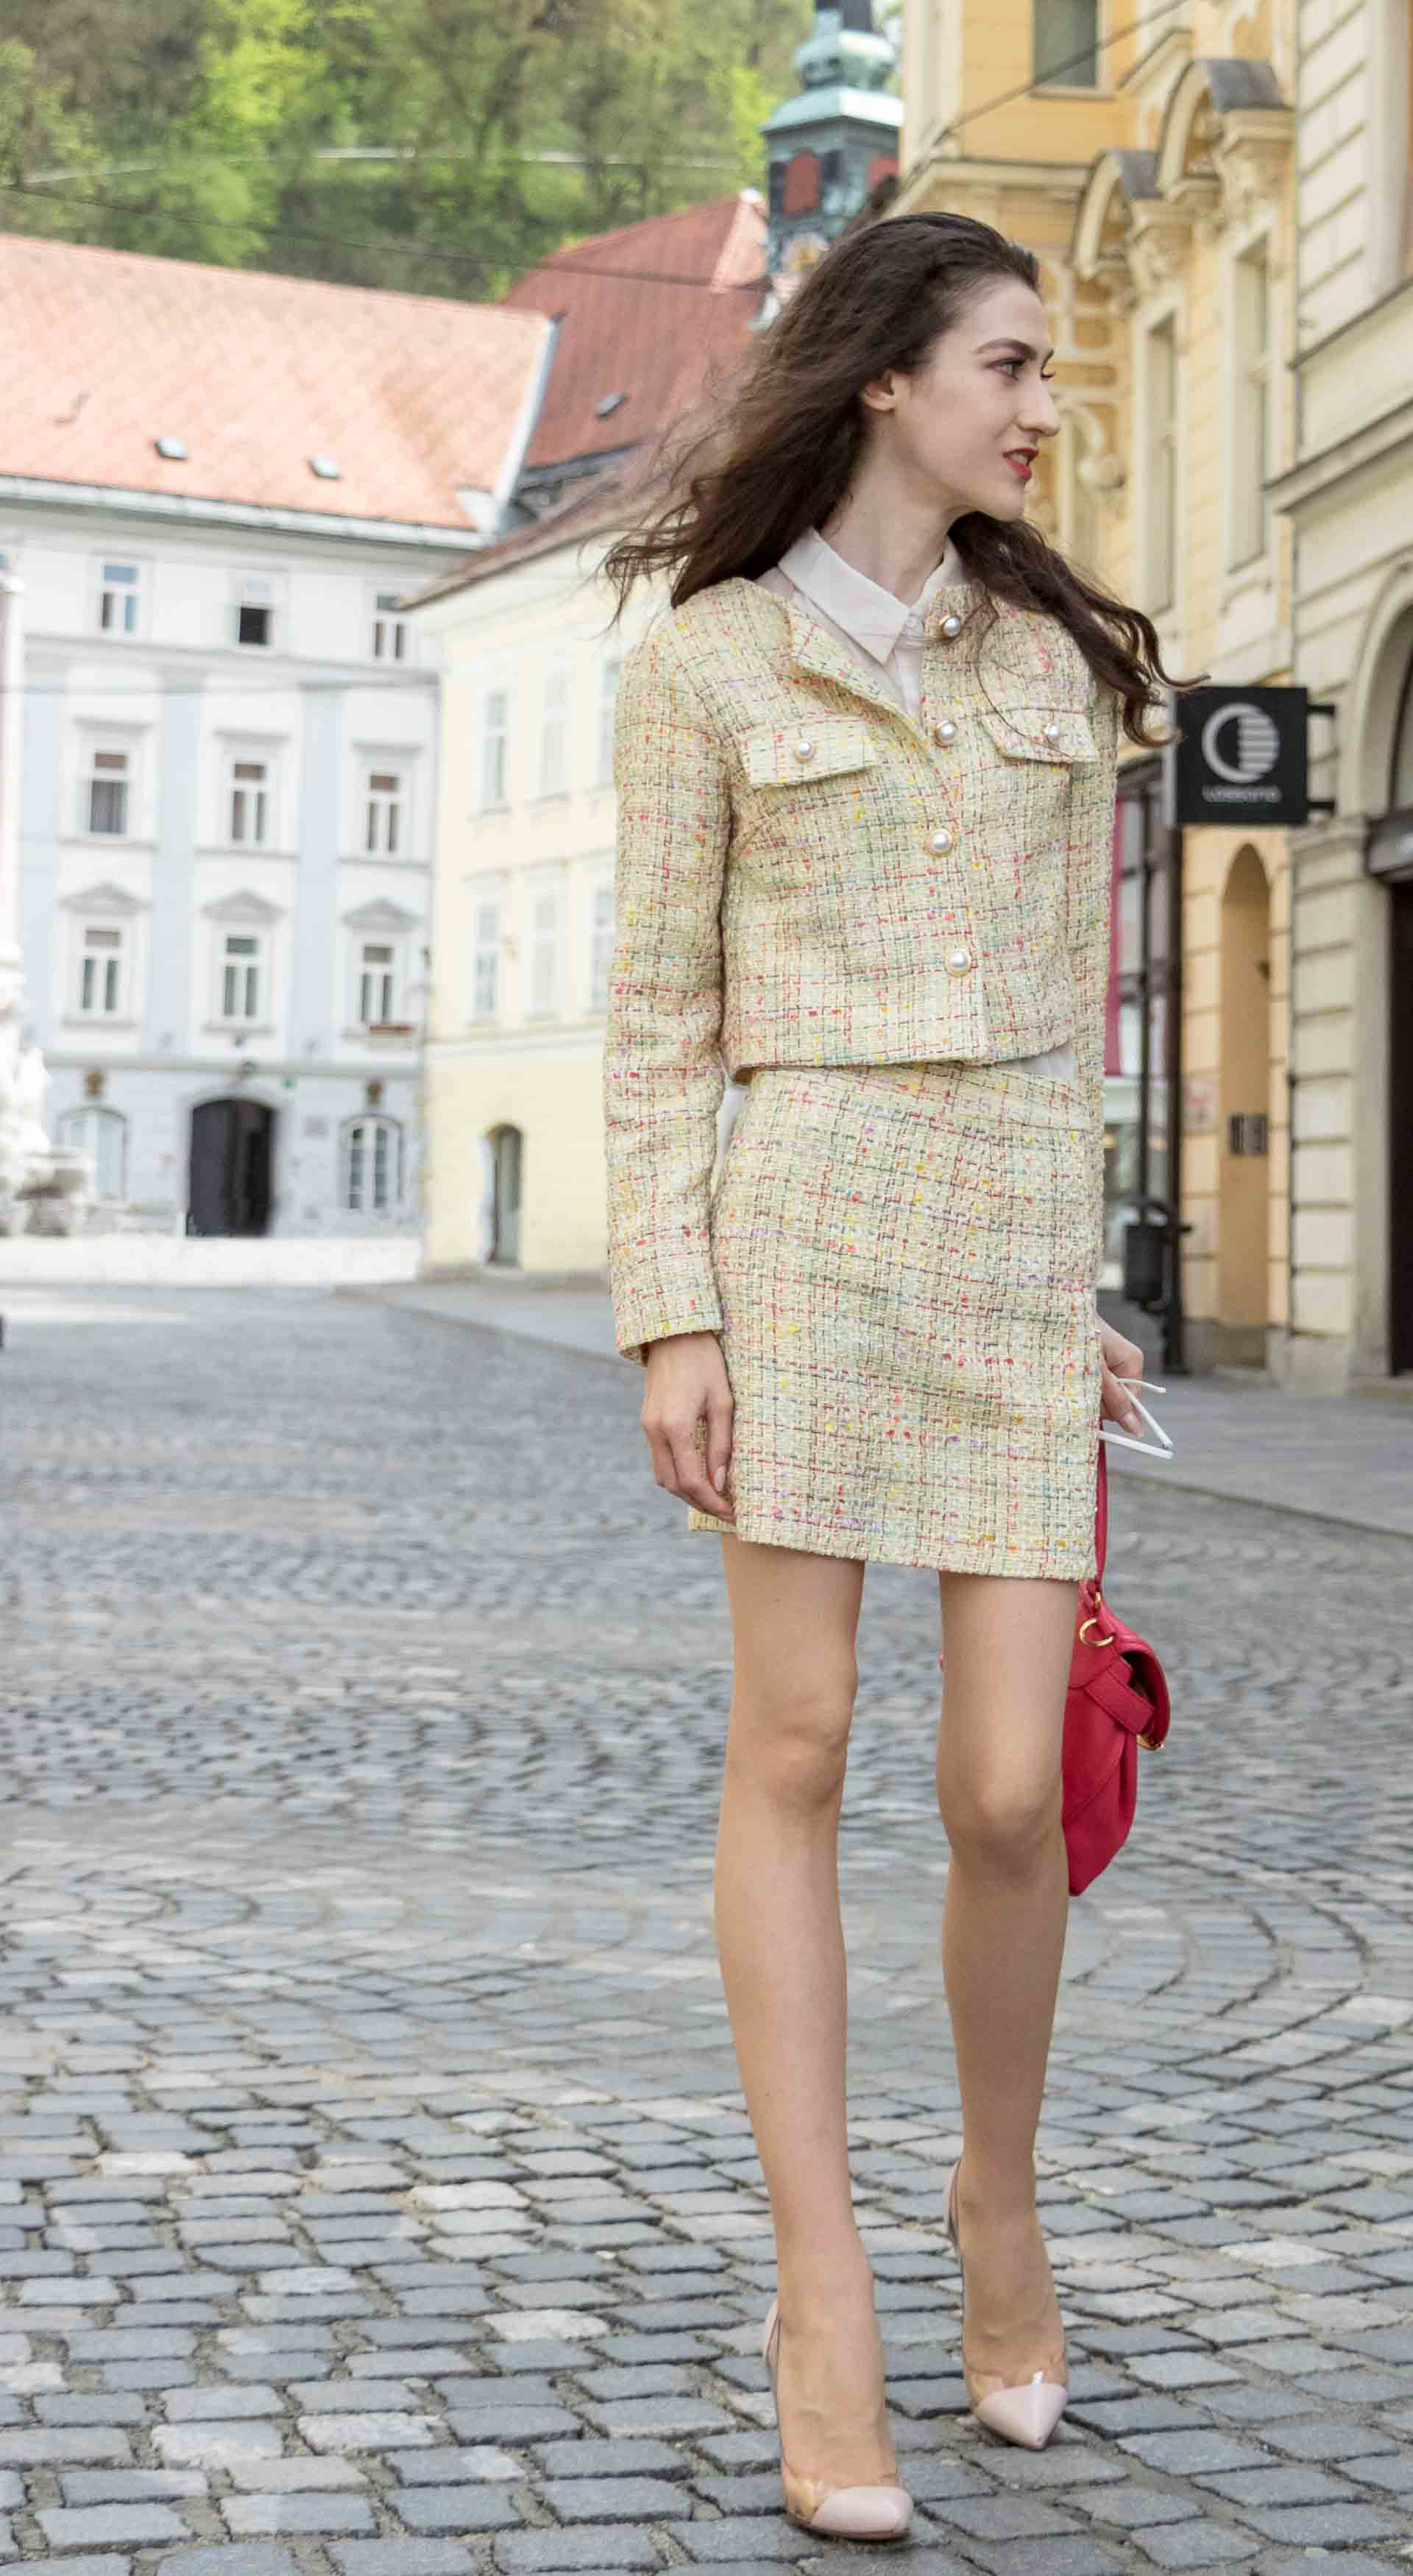 Fashion Blogger Veronika Lipar of Brunette from Wall Street wearing Storets yellow tweed mini skirt suit, Gianvito Rossi plexi pumps, See by Chloe pink top handle bagfor spring brunch